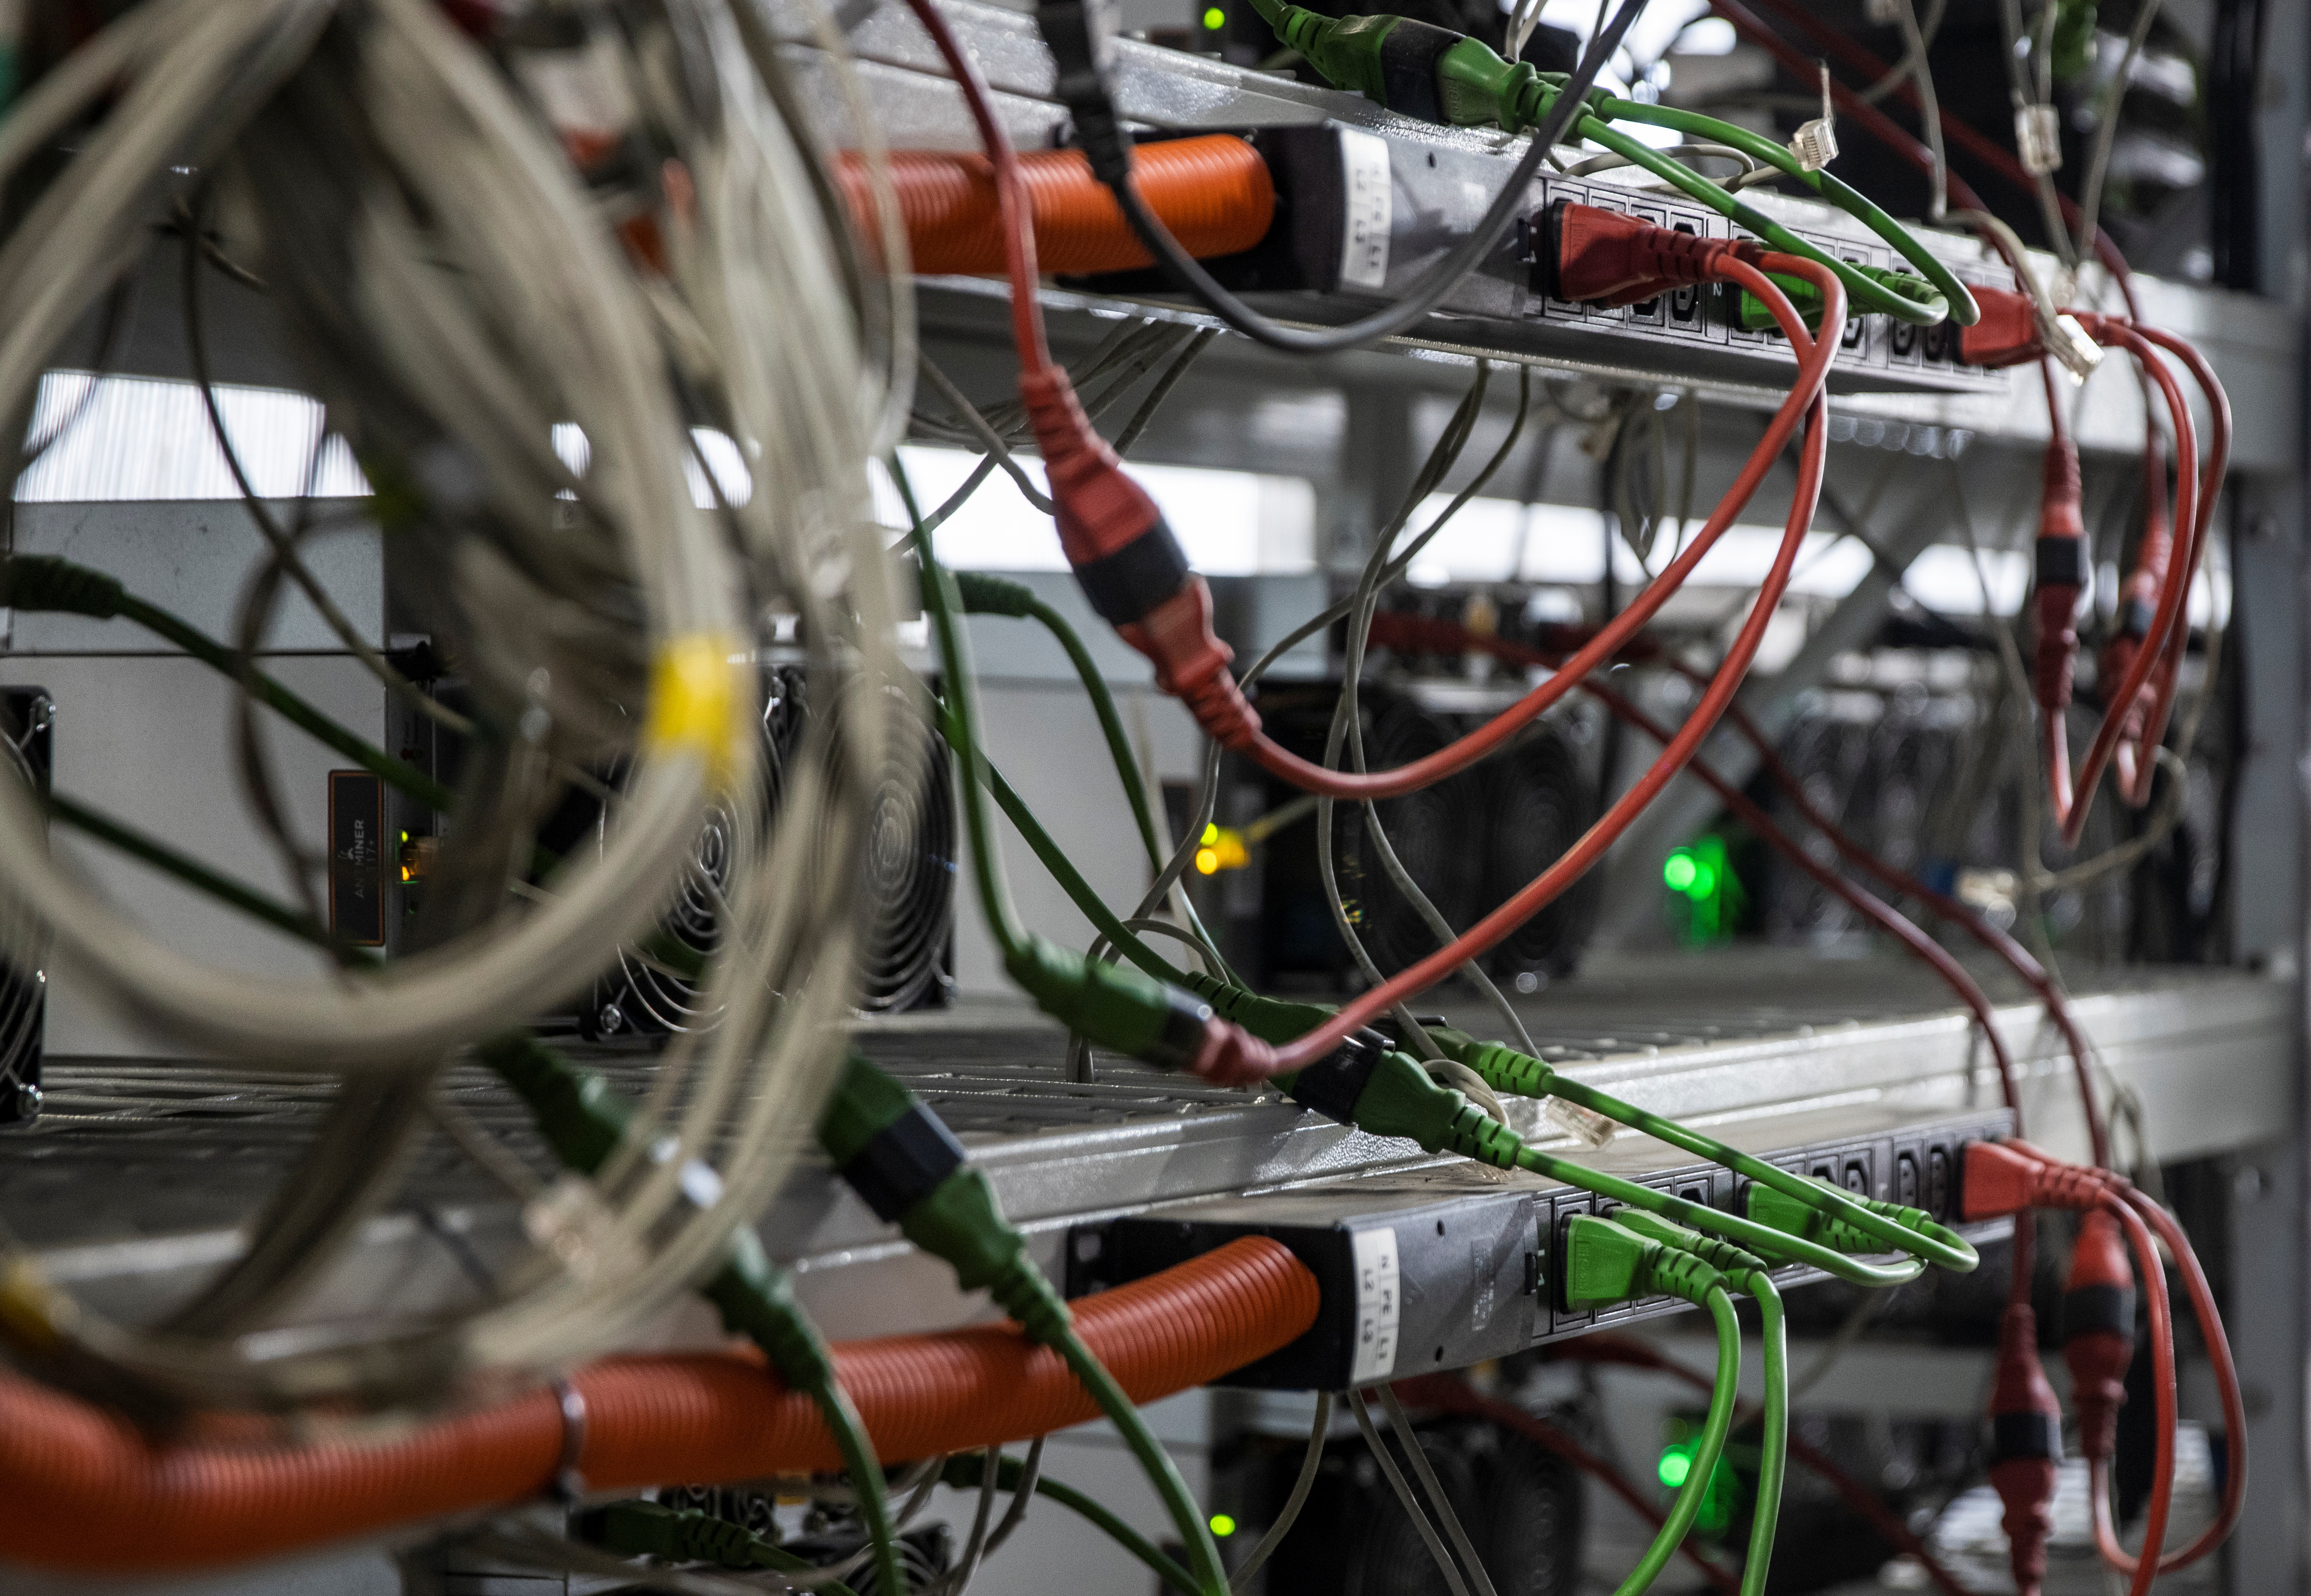 A view shows equipment at the data centre of BitRiver company providing services for cryptocurrency mining in the city of Bratsk in Irkutsk Region, Russia March 2, 2021. BitRiver offers hosting services and turnkey solutions for cryptocurrency mining operations to institutional investors including bitcoin mining firms. Picture taken March 2, 2021. REUTERS/Maxim Shemetov